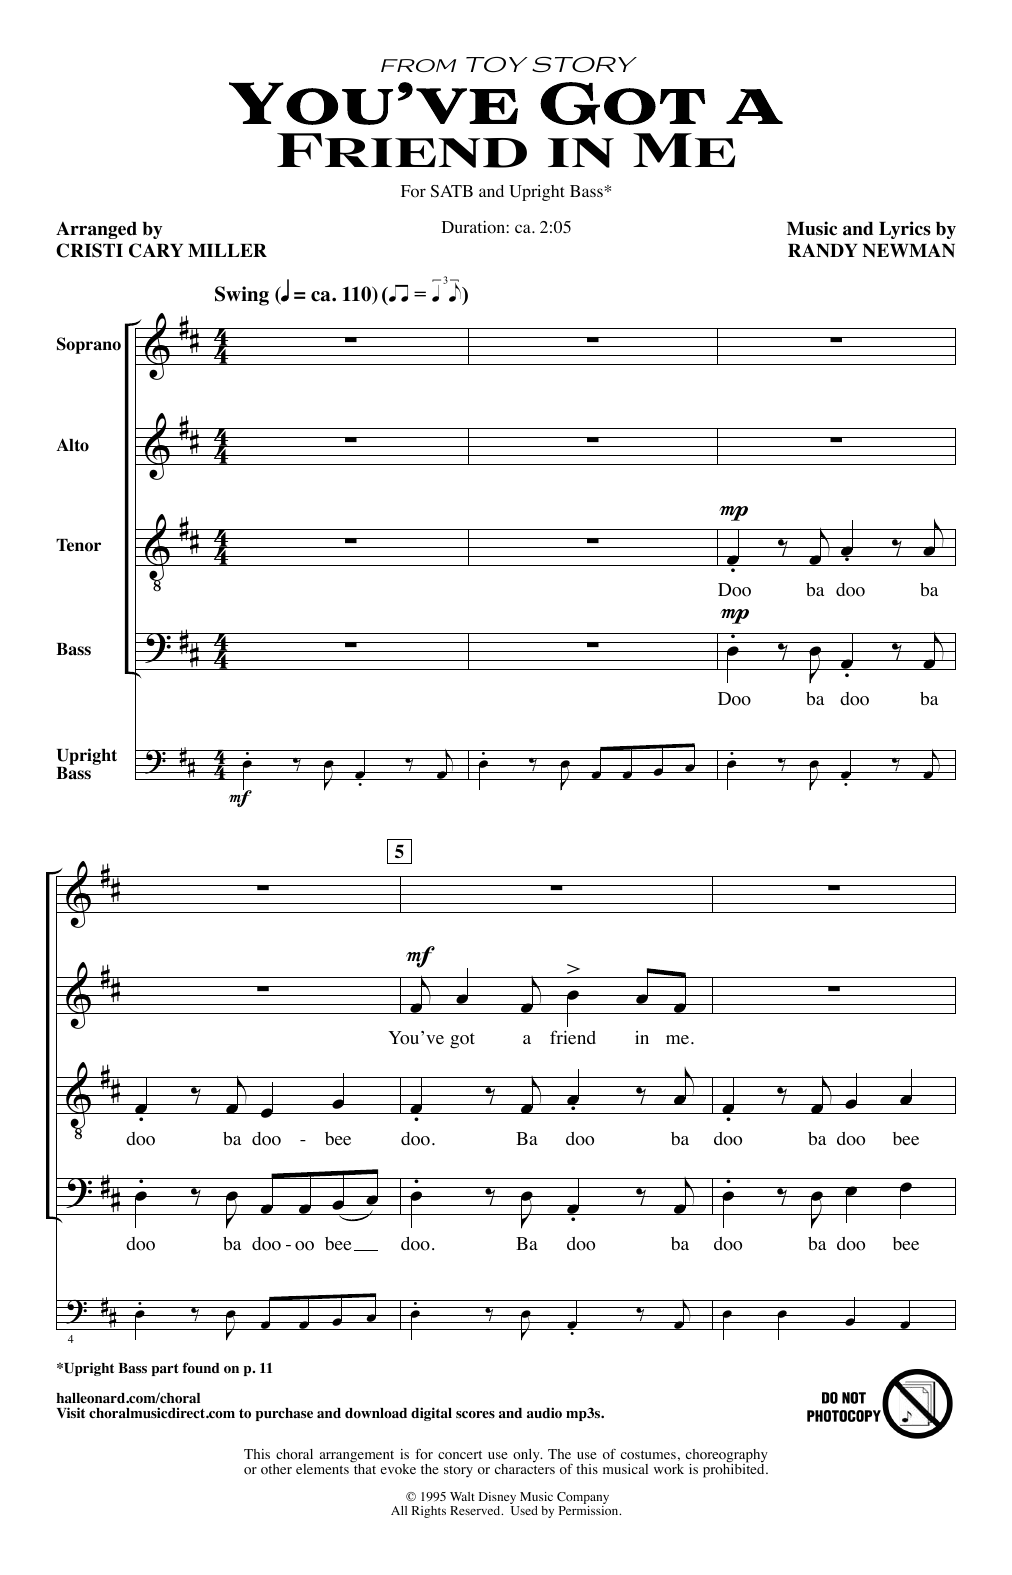 You've Got A Friend In Me (from Toy Story) (arr. Cristi Cary Miller) (SATB Choir)